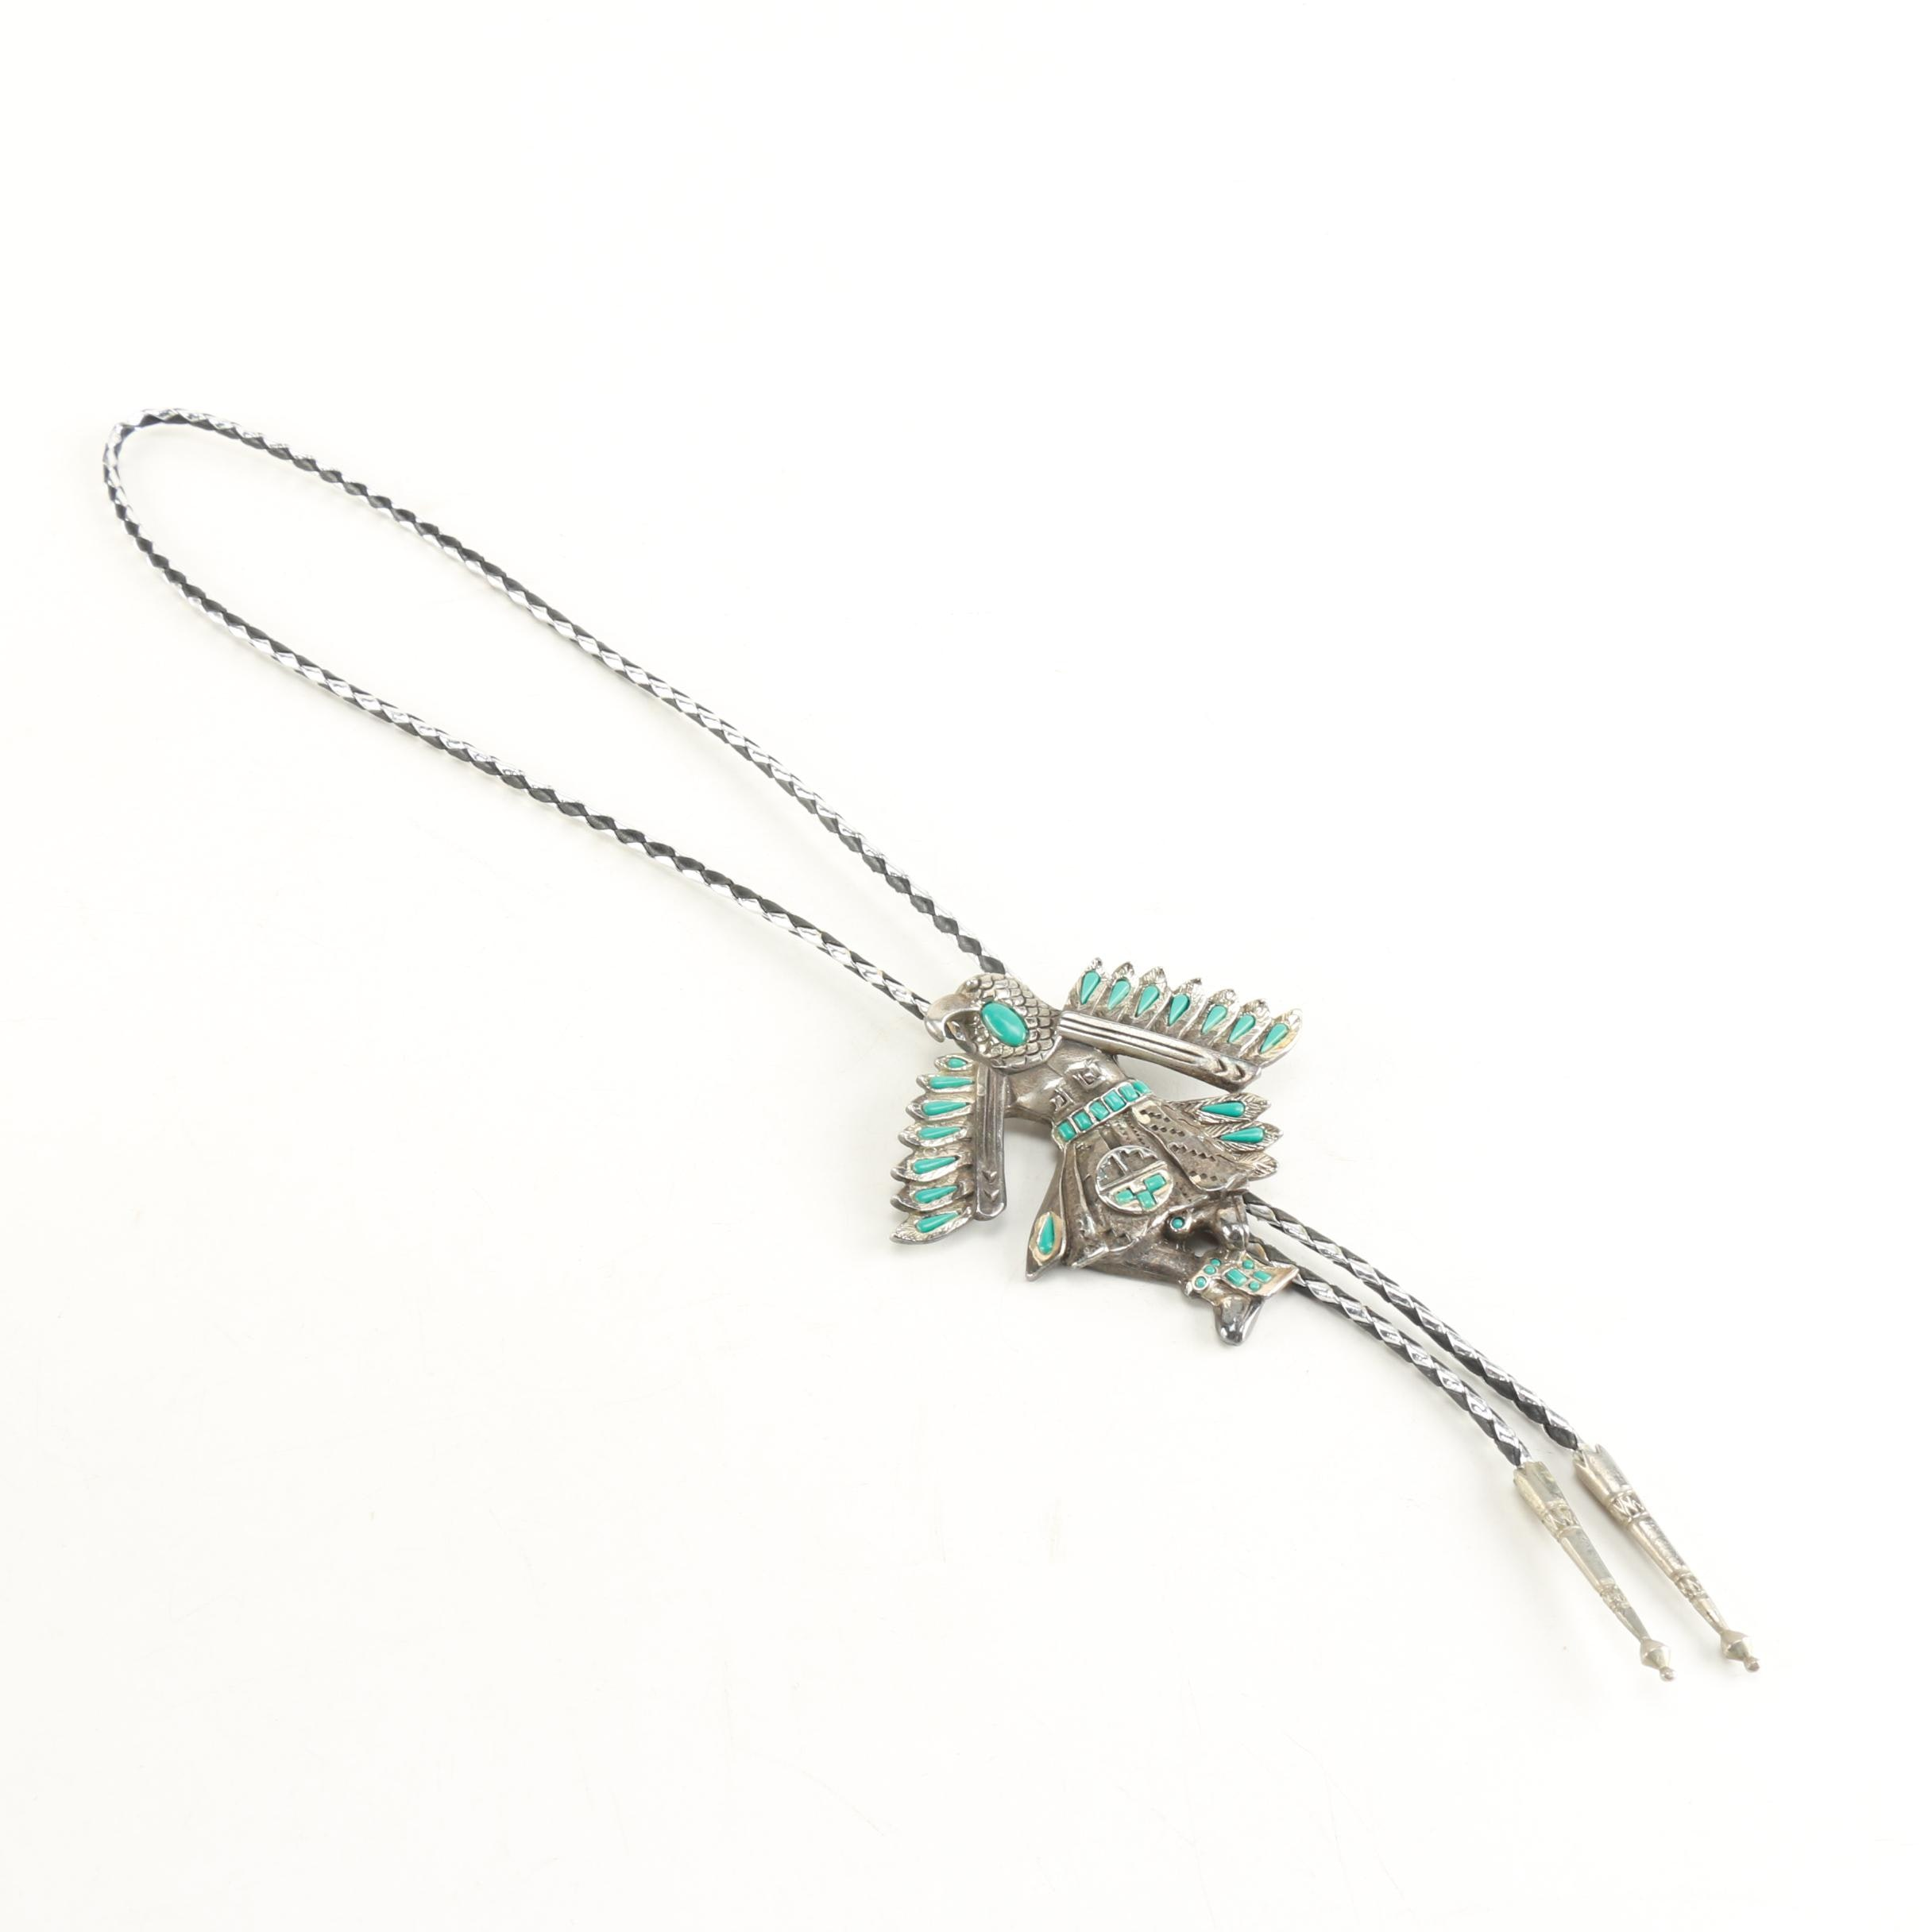 Silver Tone Turquoise Style Bolo Tie